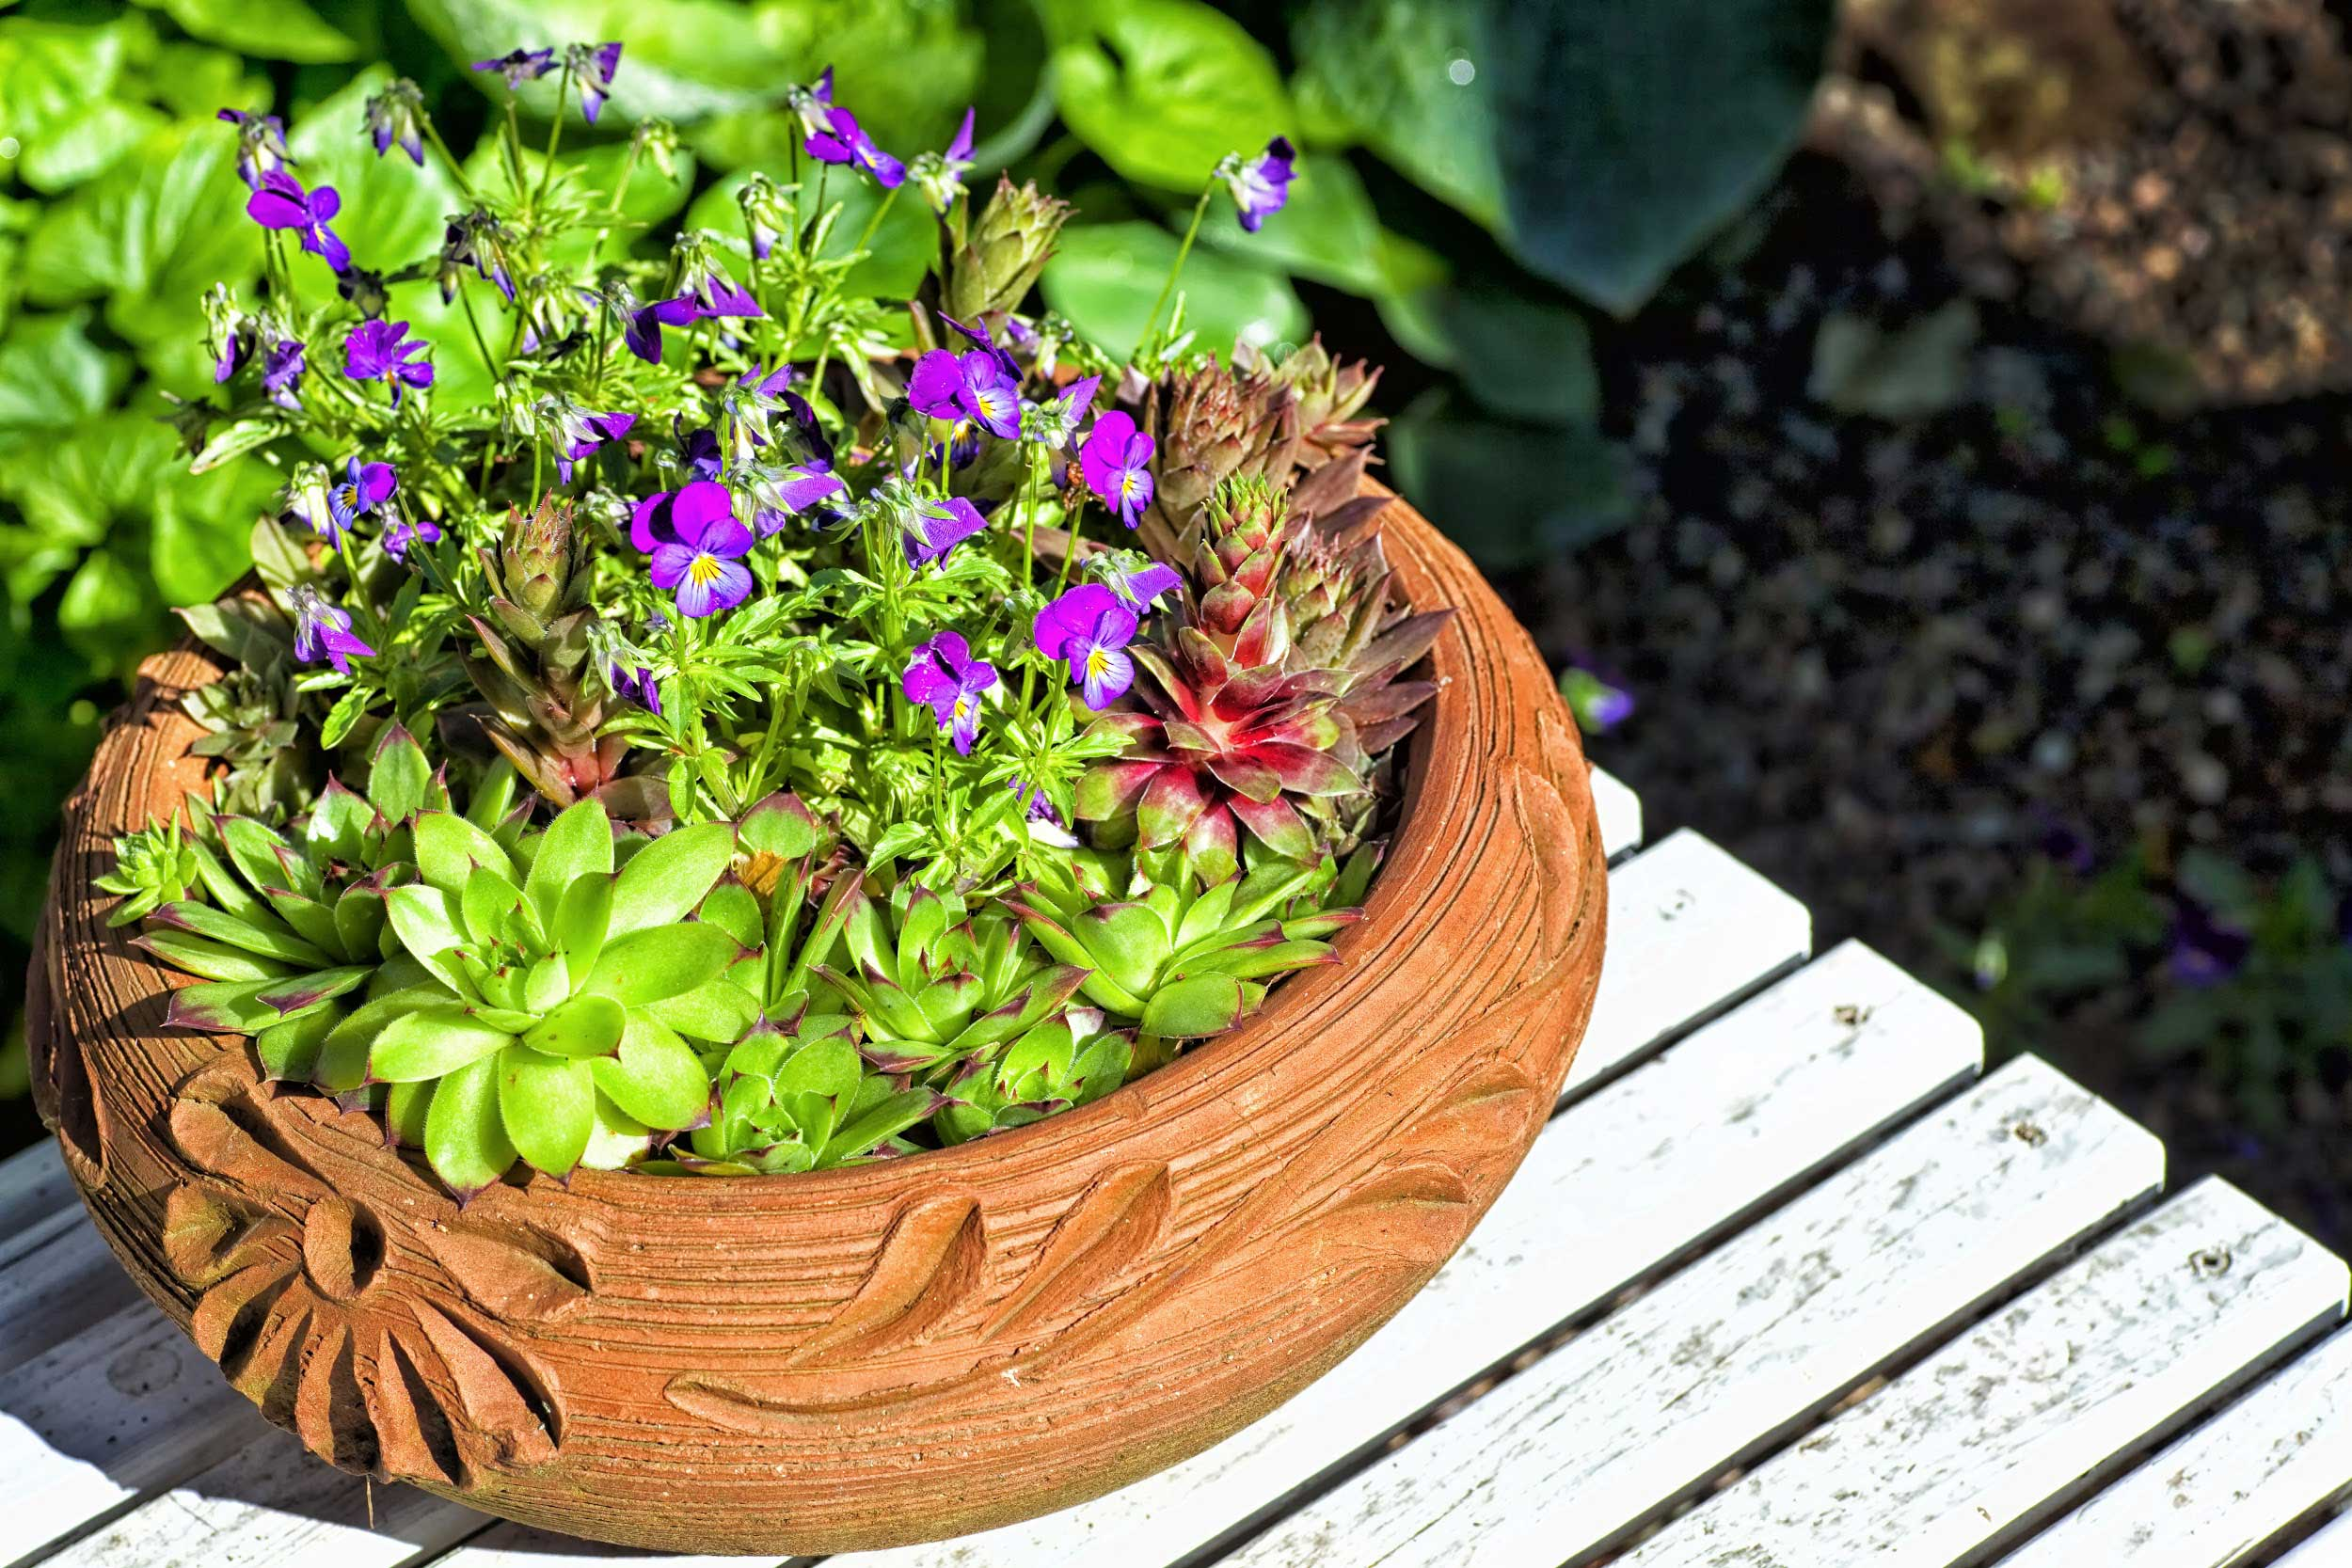 decorative flower pot with purple flowers and succulent plants on patio